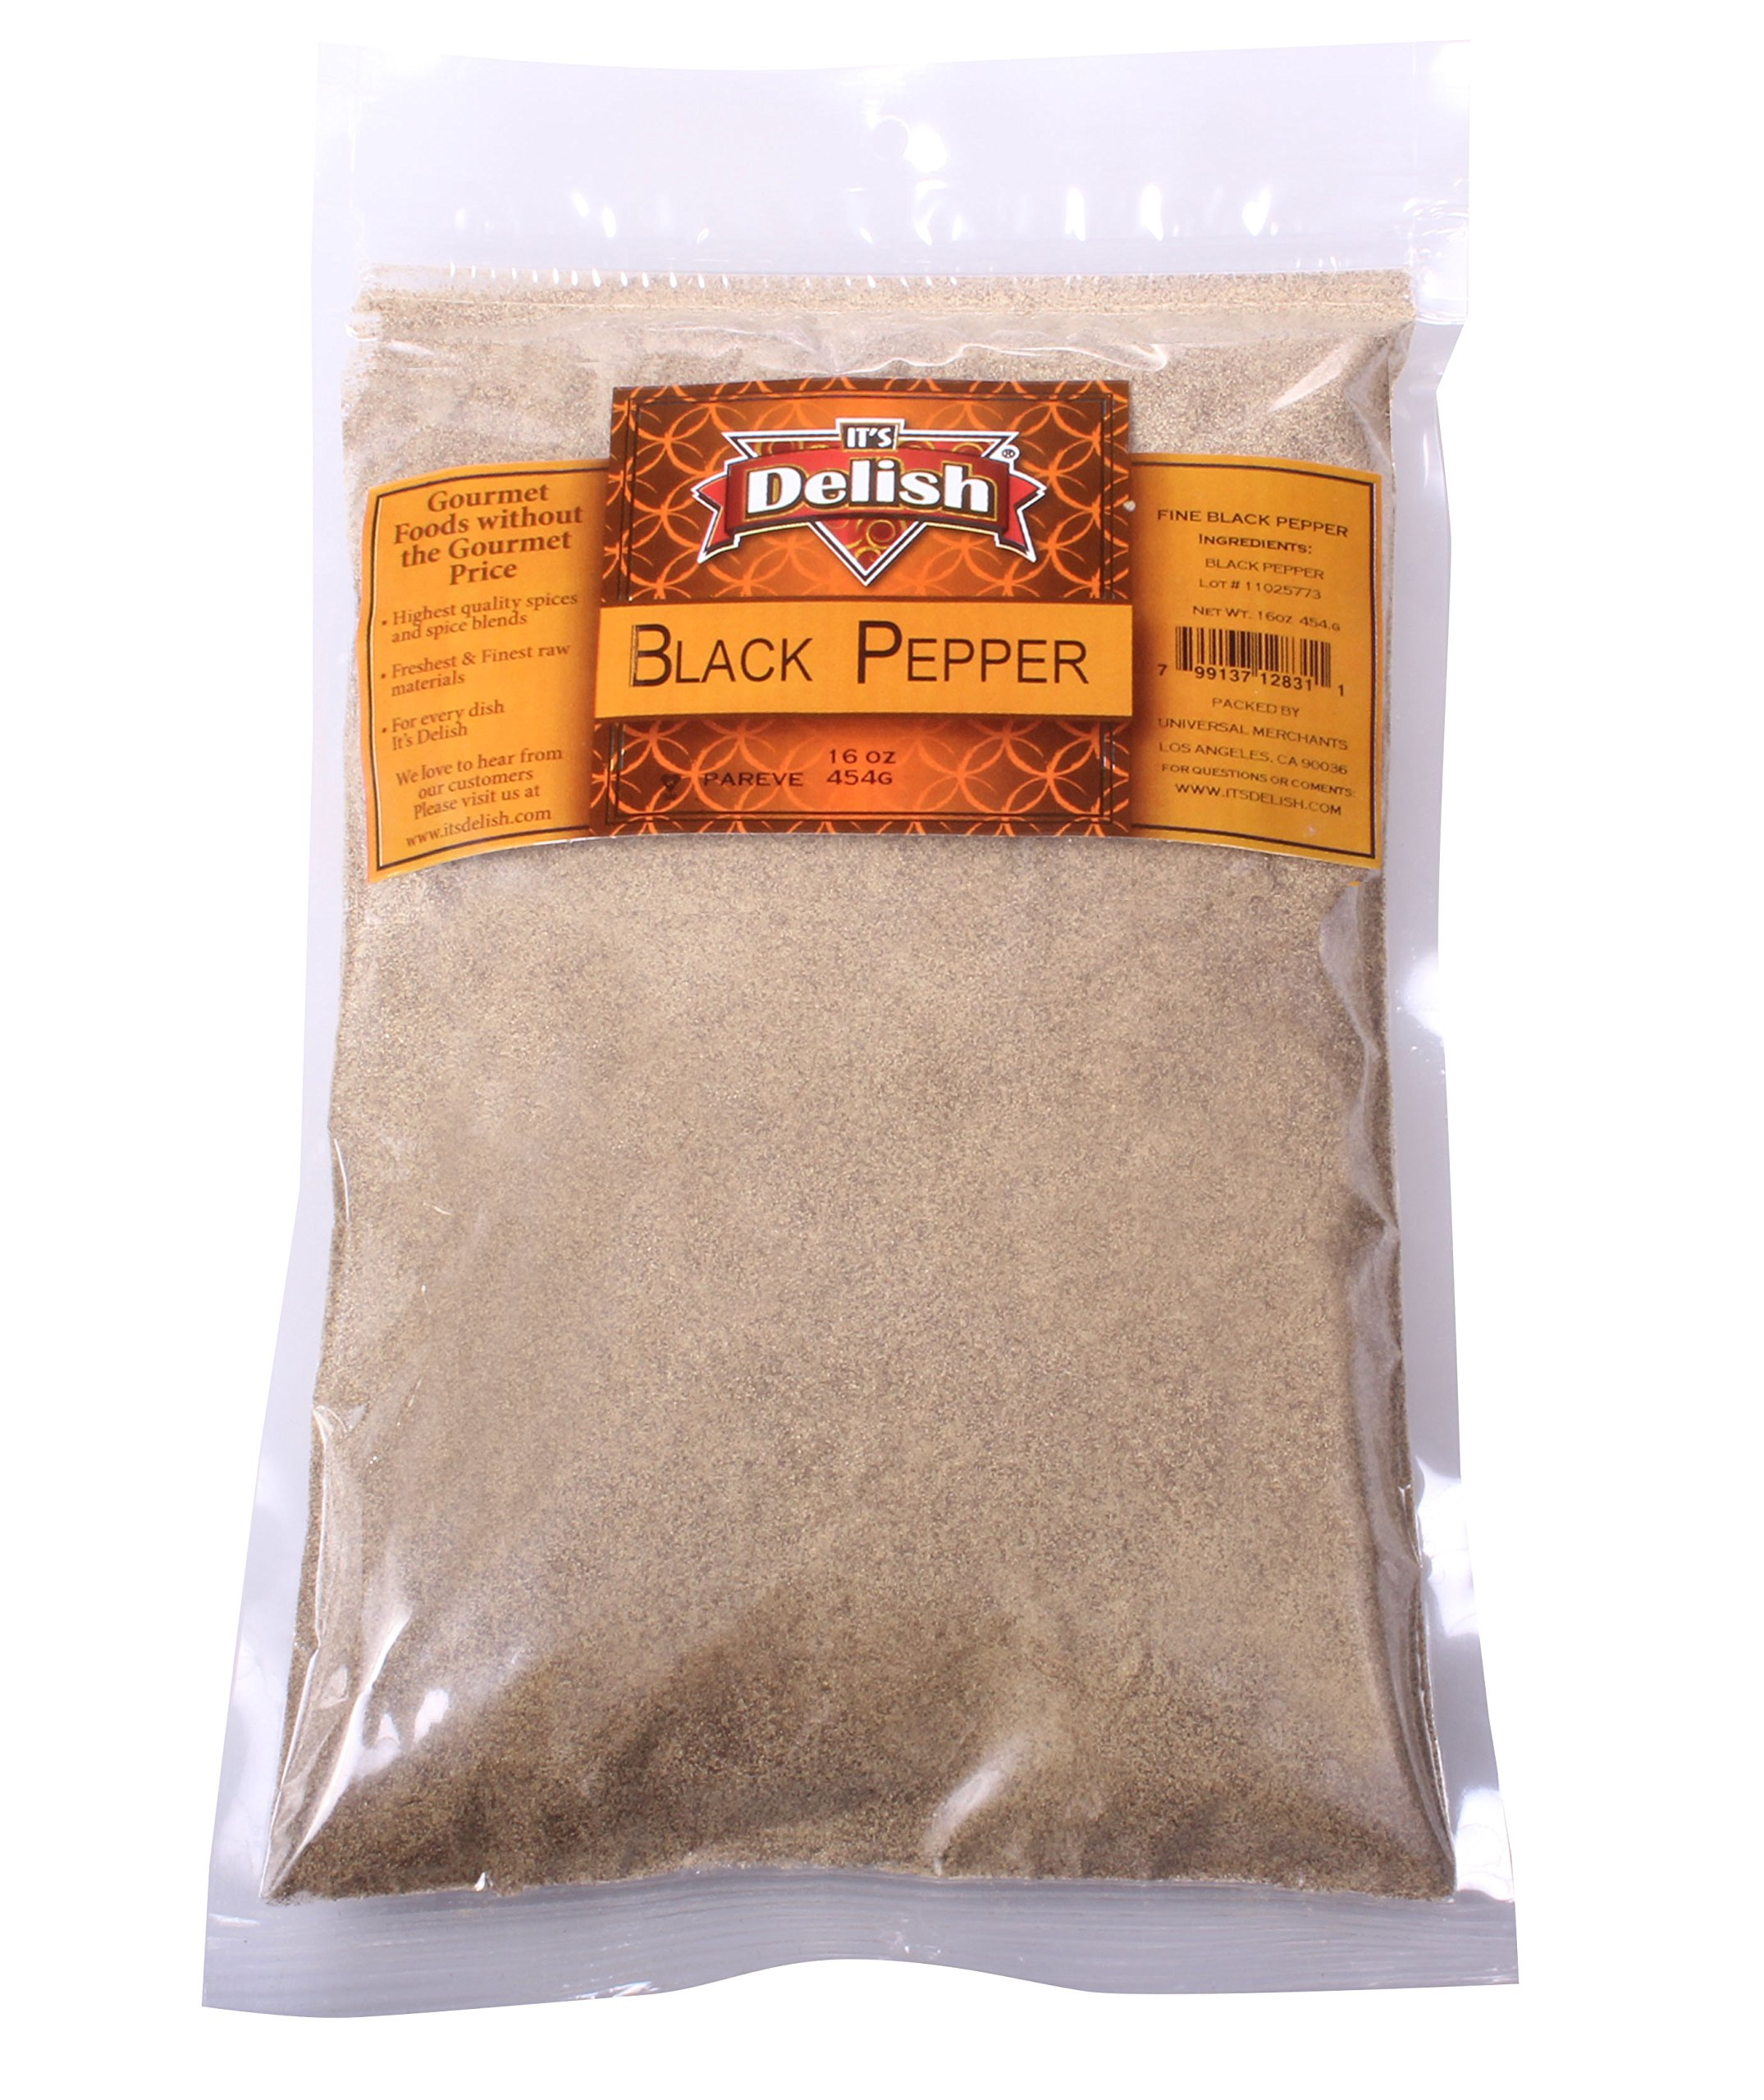 Black Pepper by Its Delish (Gourmet ground, 2 lbs)